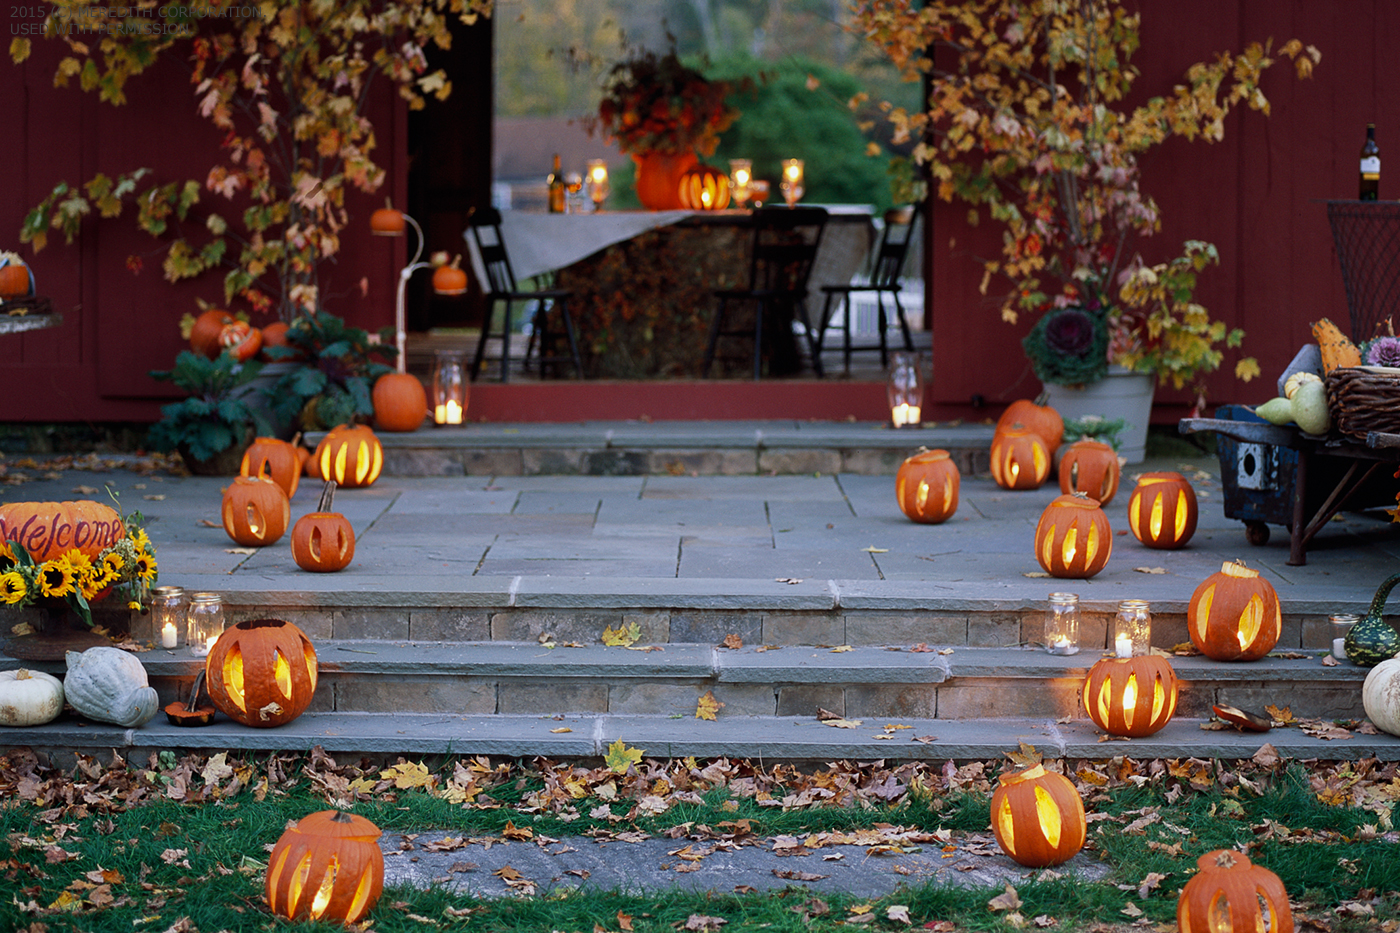 How to Host a Fall Backyard Party - bhgrelife.com